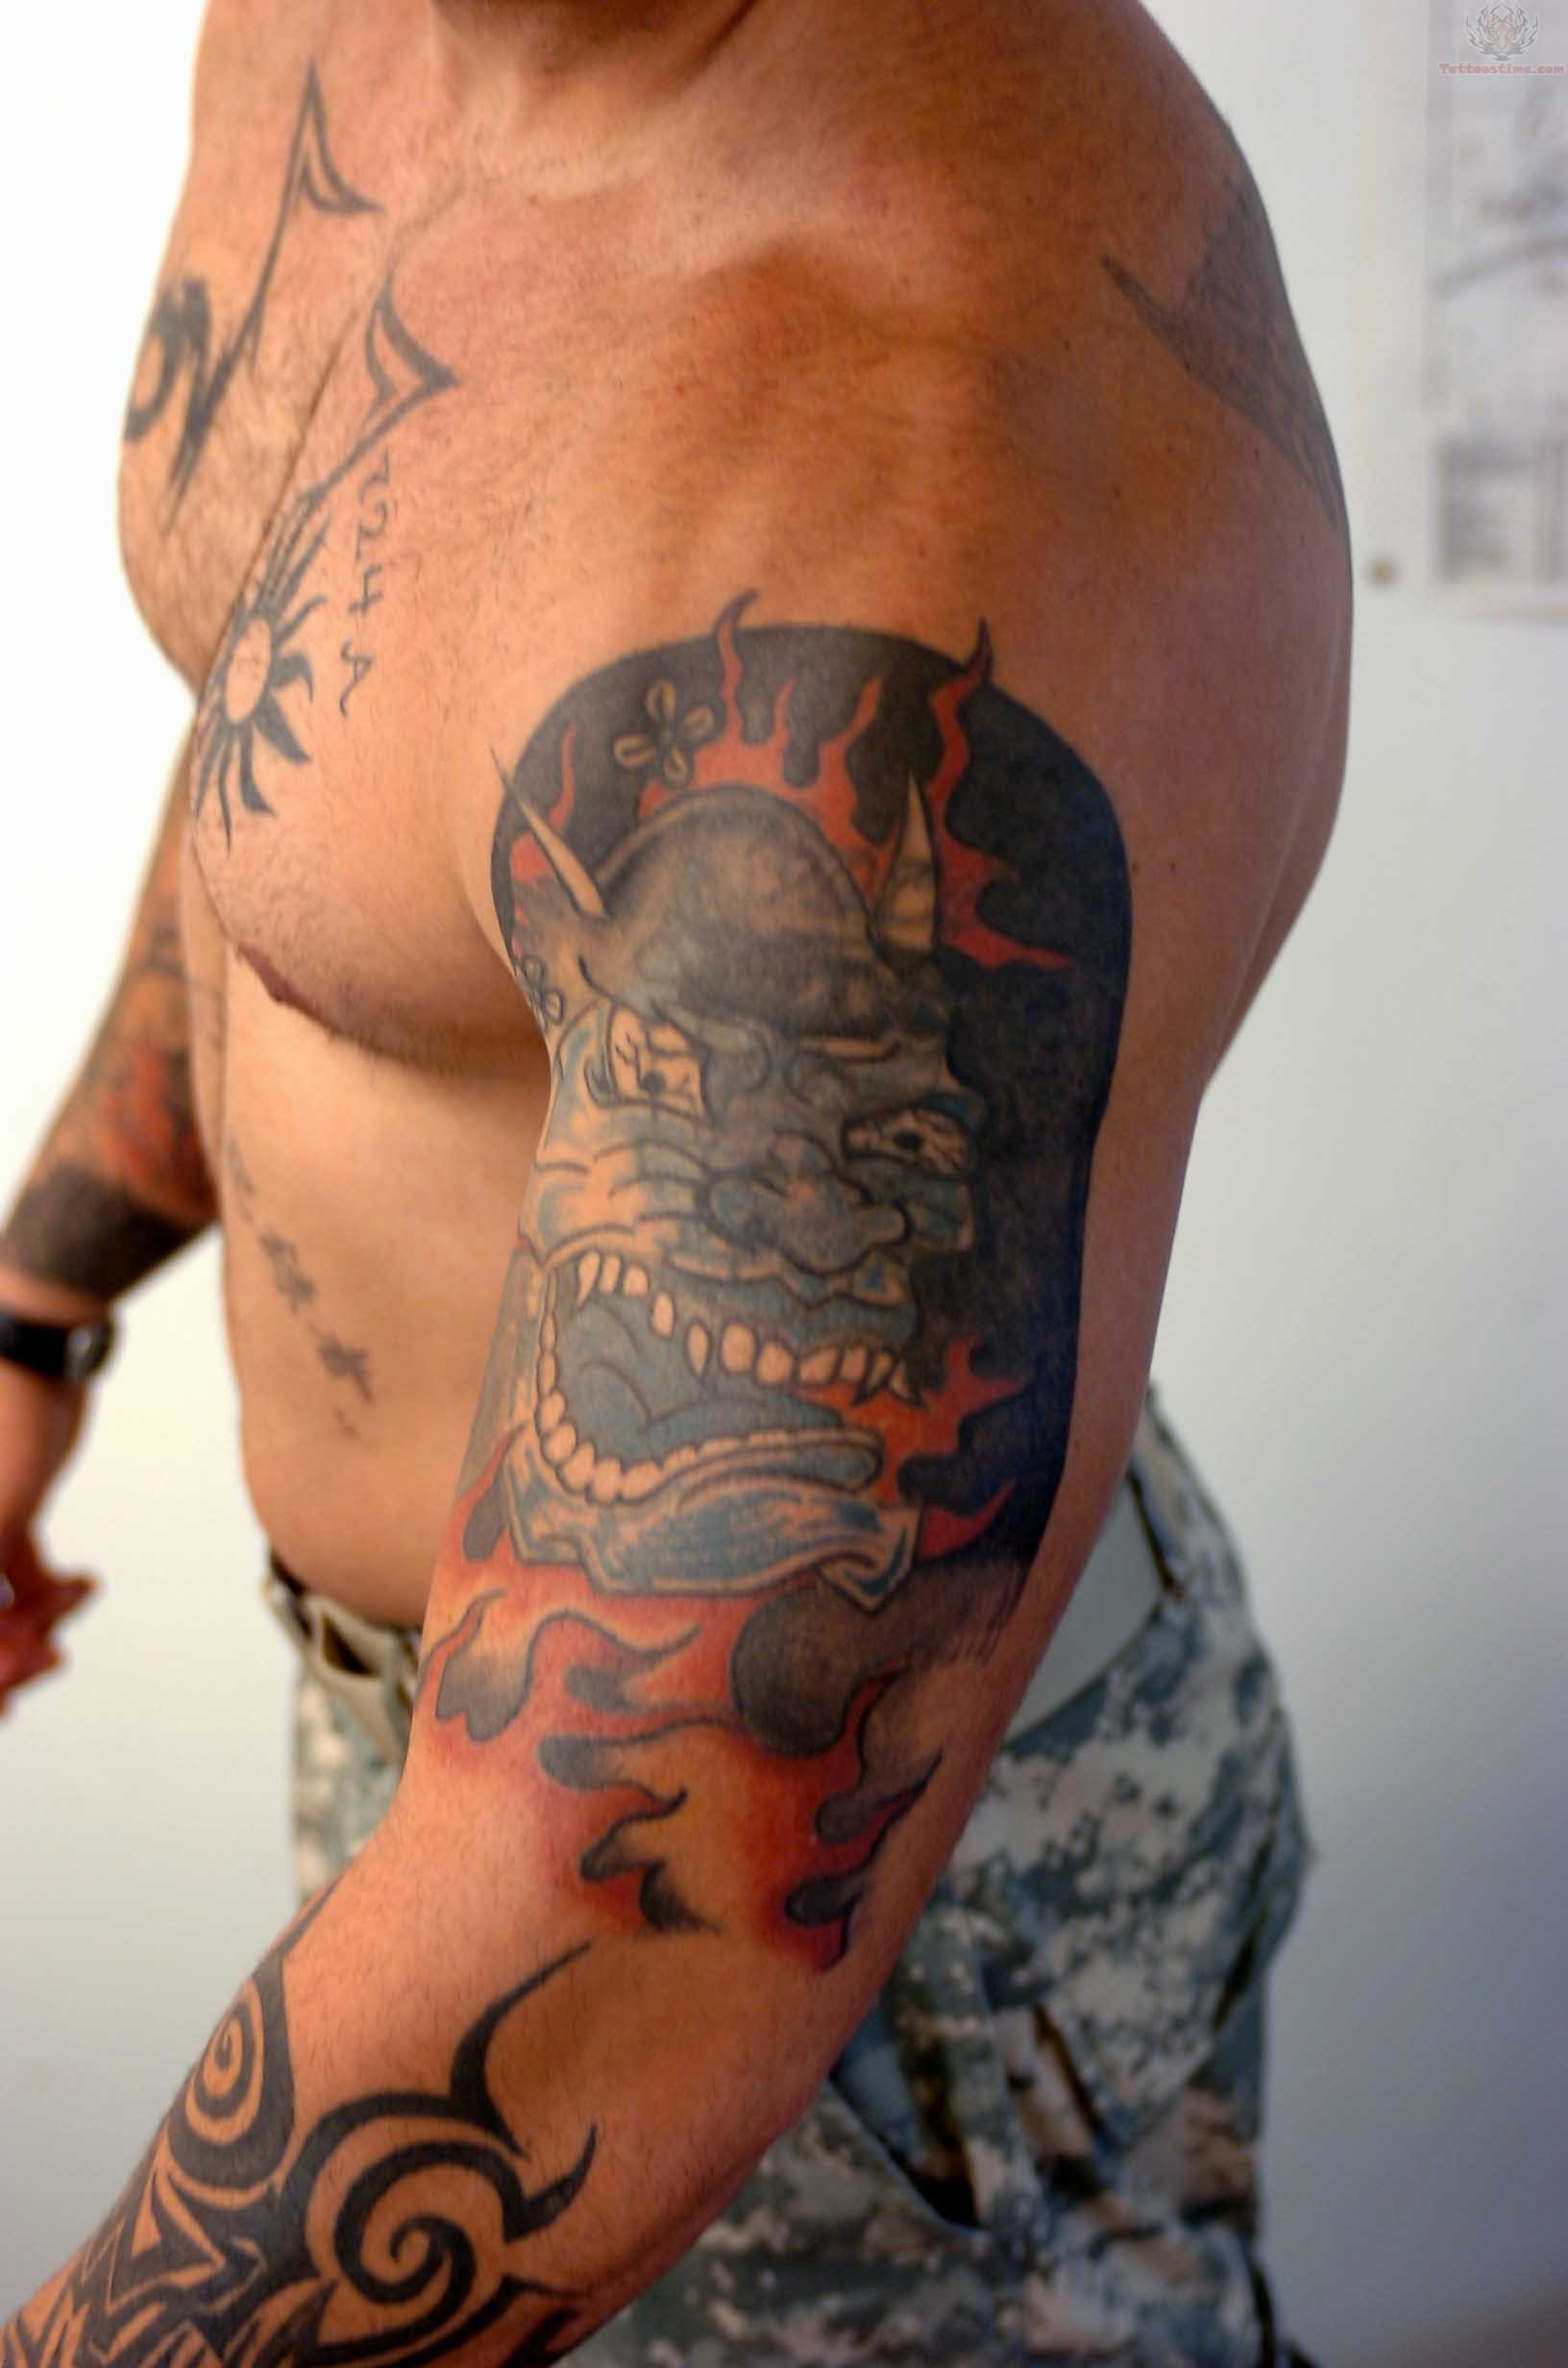 Military (Army) Tattoos Designs, Ideas And Meaning